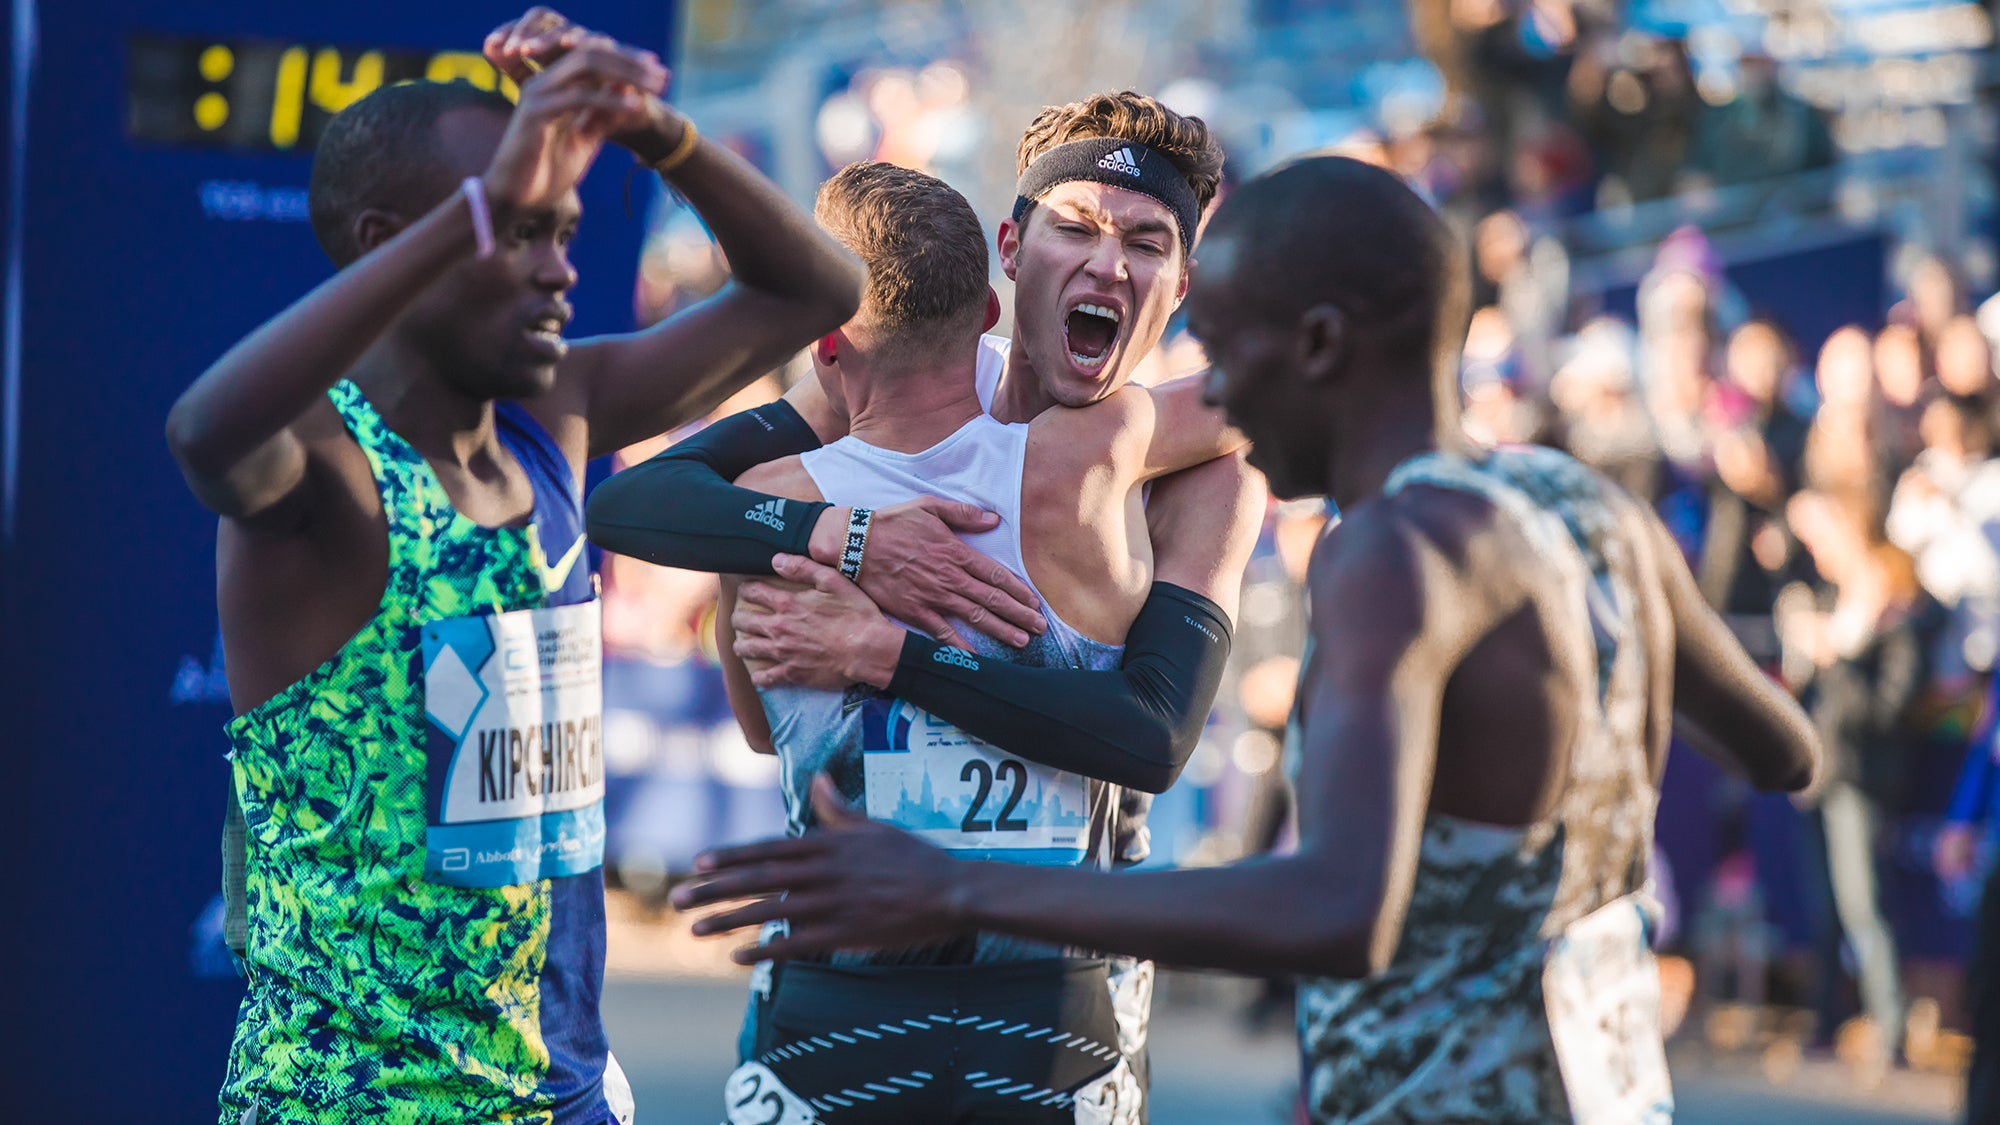 Men USATF 5K Champs 2019-9